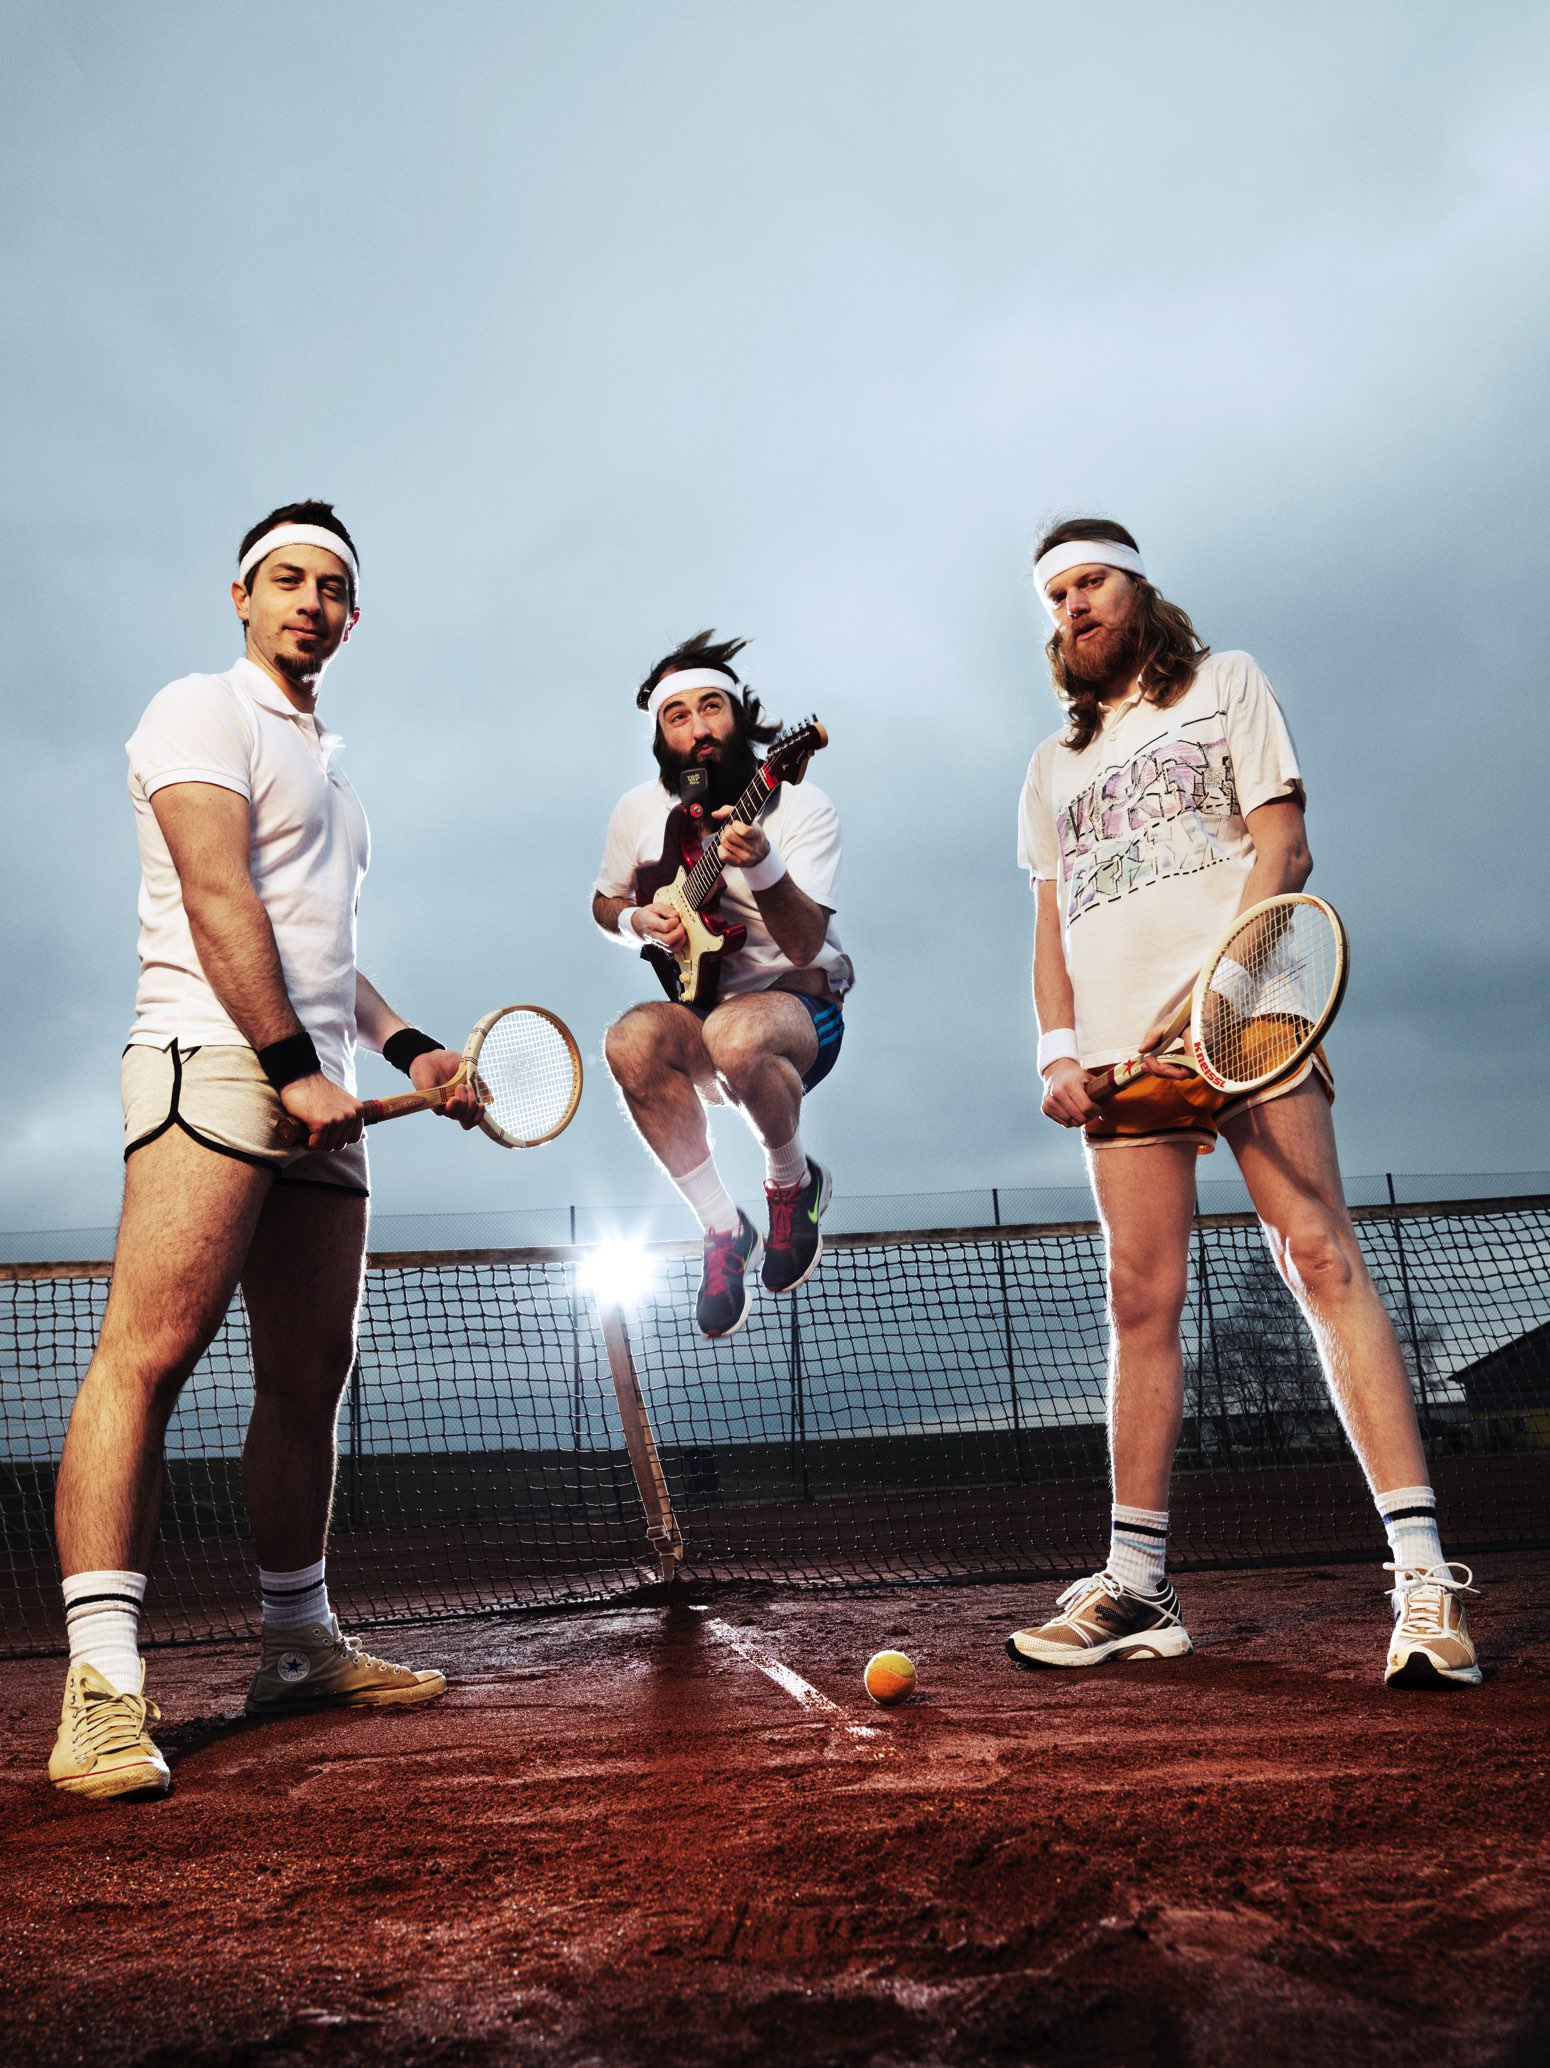 Lausch-Tennis-01-web